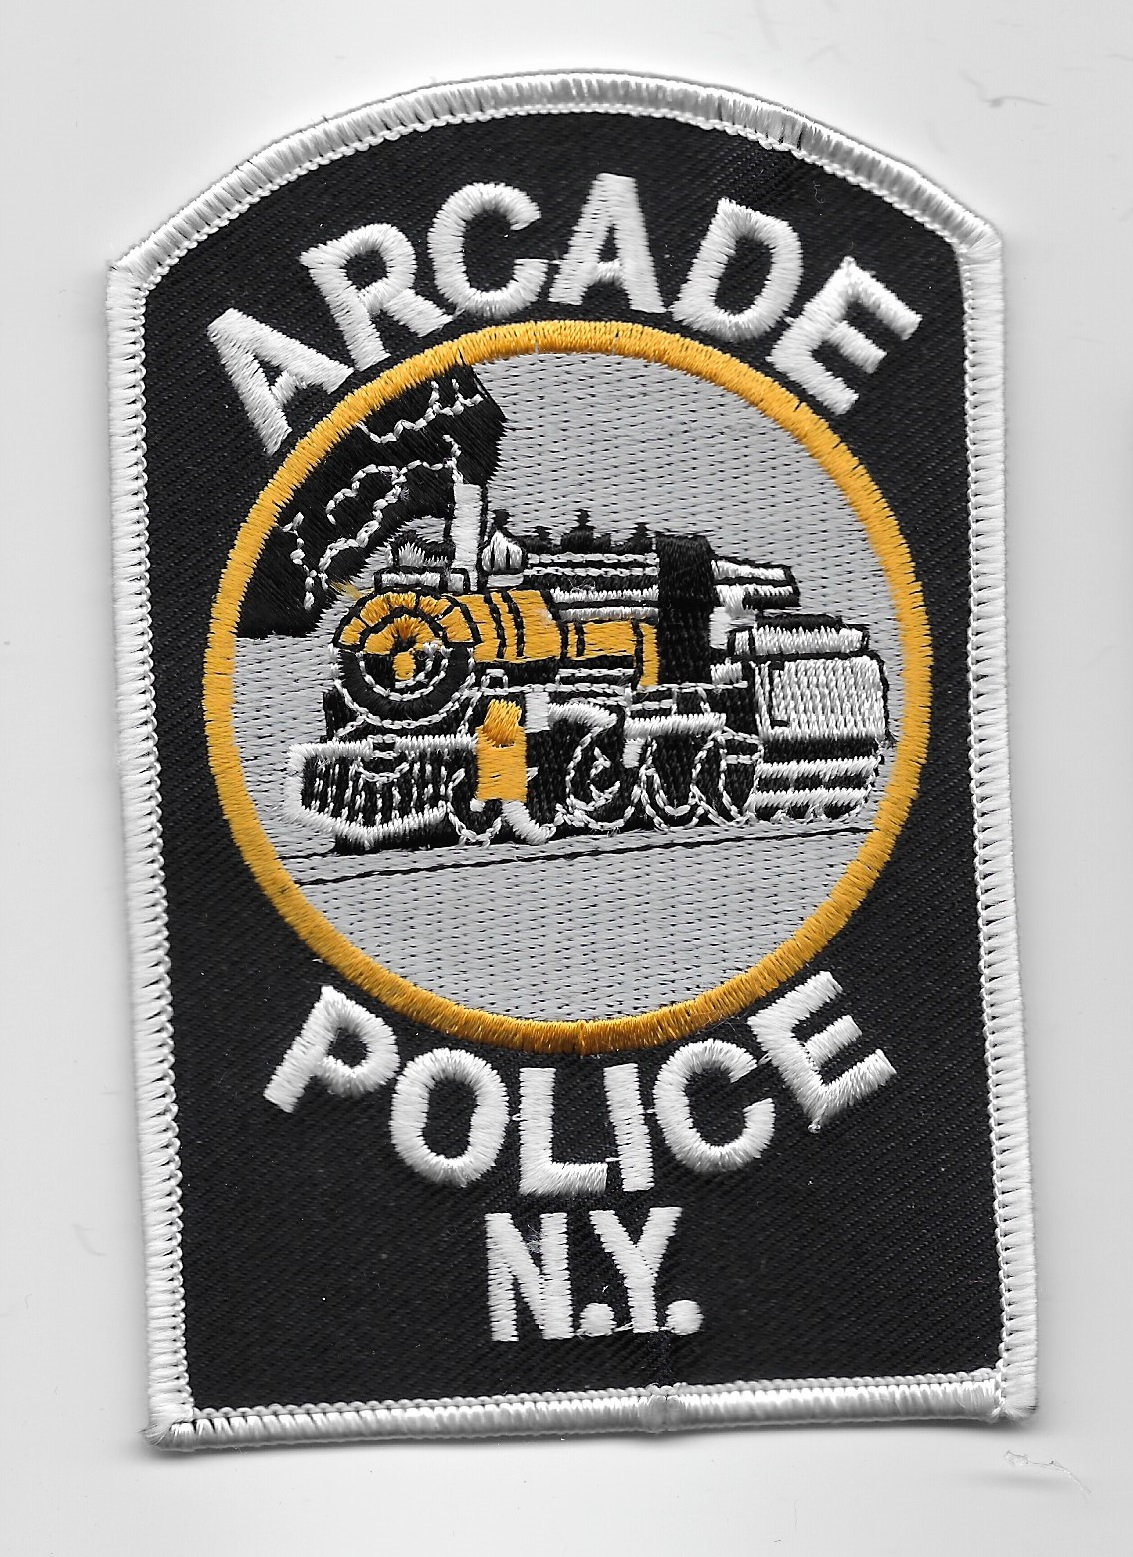 Arcade Police NY Train patch